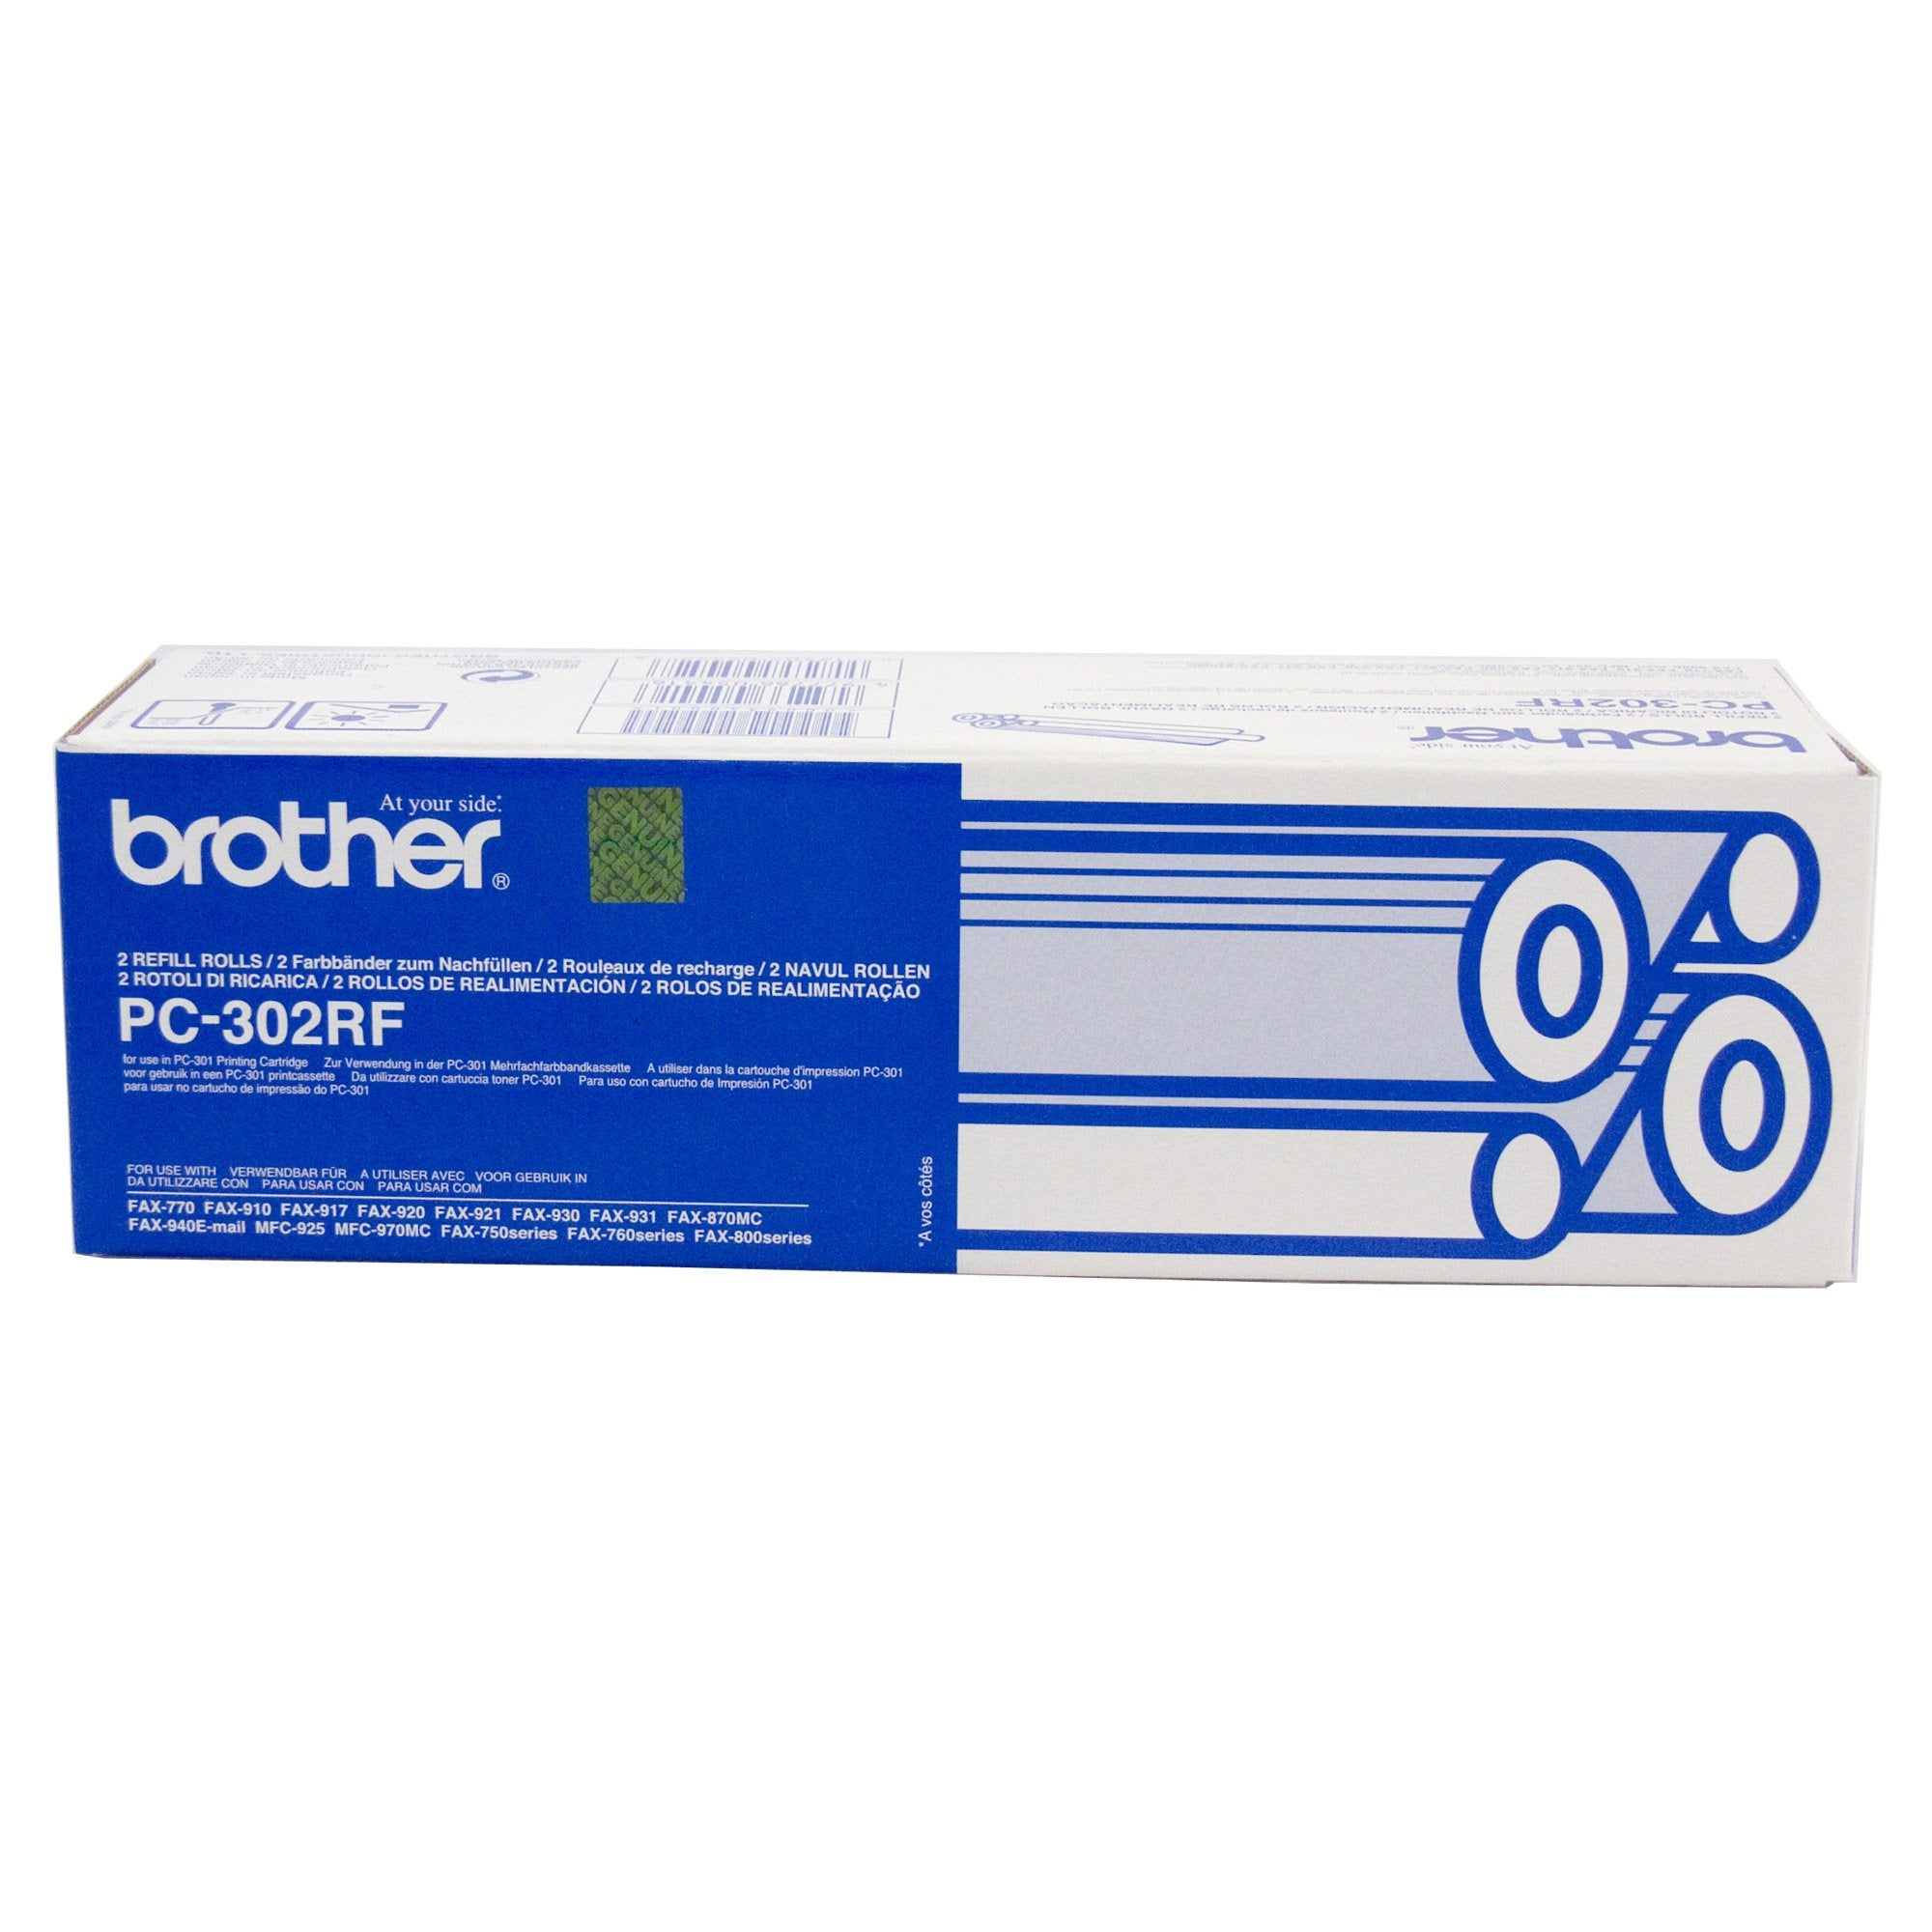 Brother PC-302RF FAX FILM Toner Cartridge